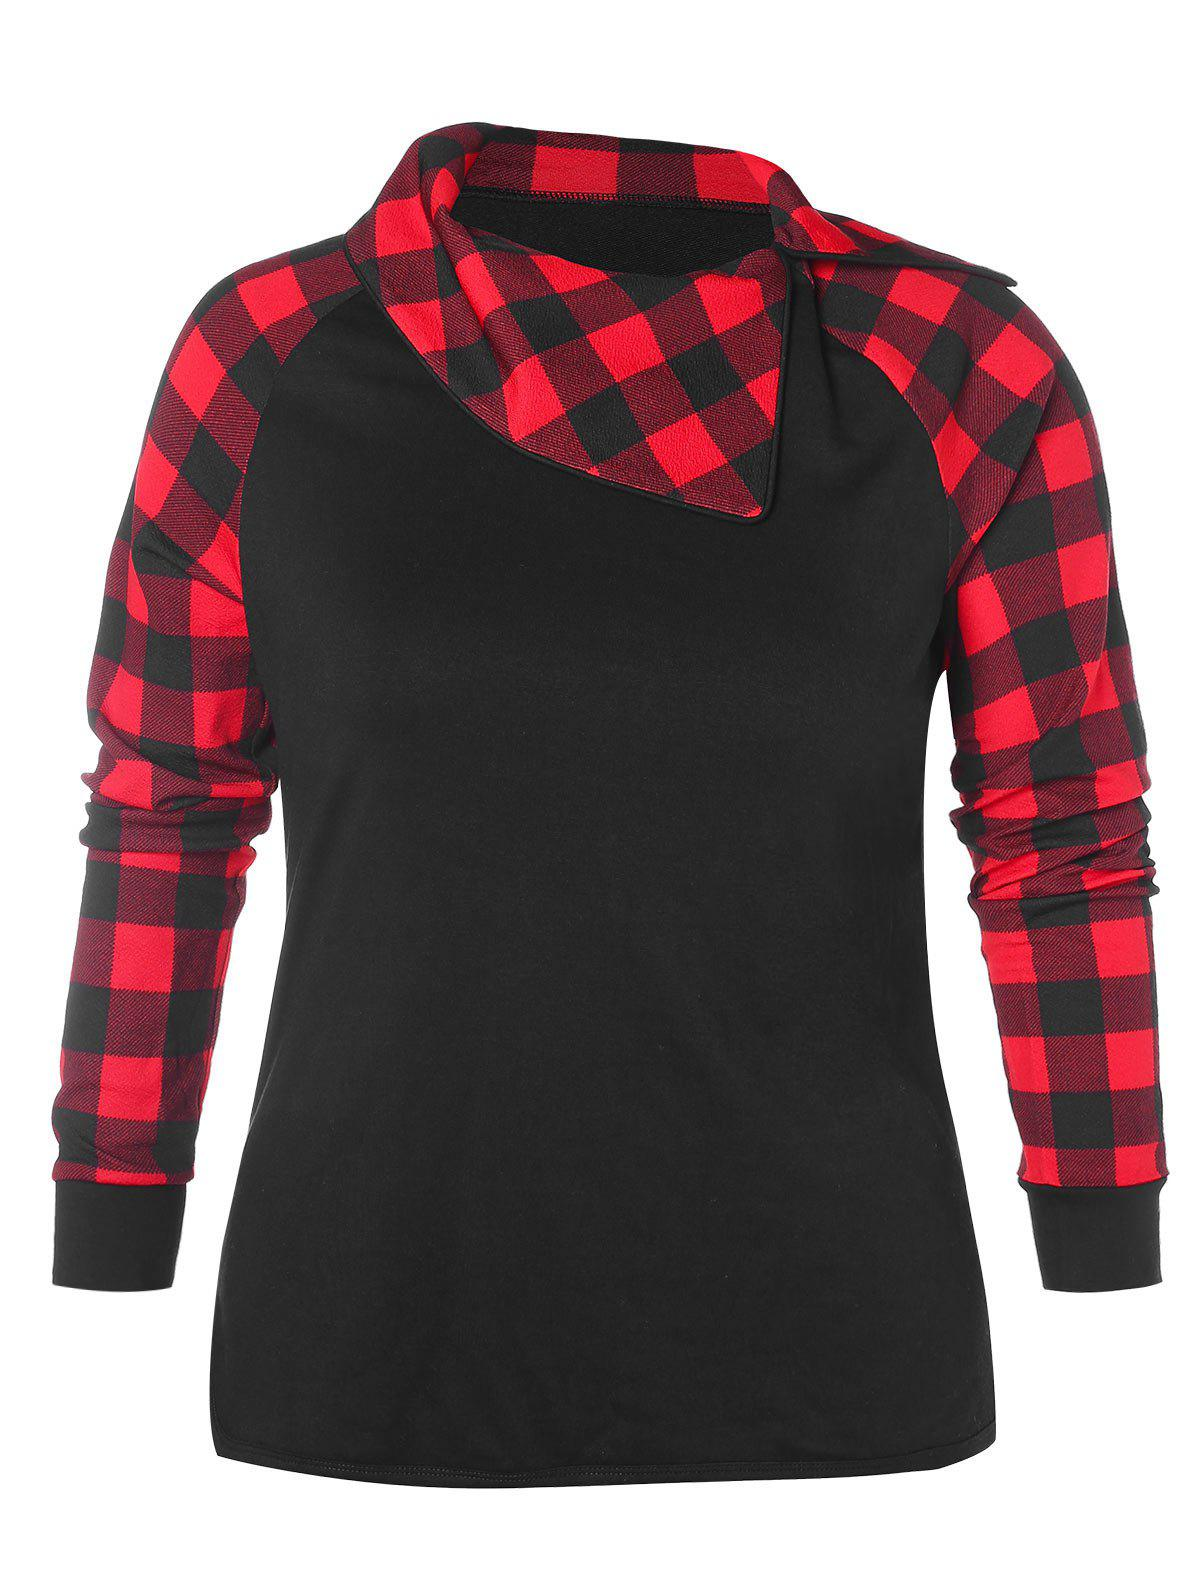 7532458dd5b7b 57% OFF   2018 Plus Size Plaid Raglan Sleeve Sweatshirt In Black 4x ...